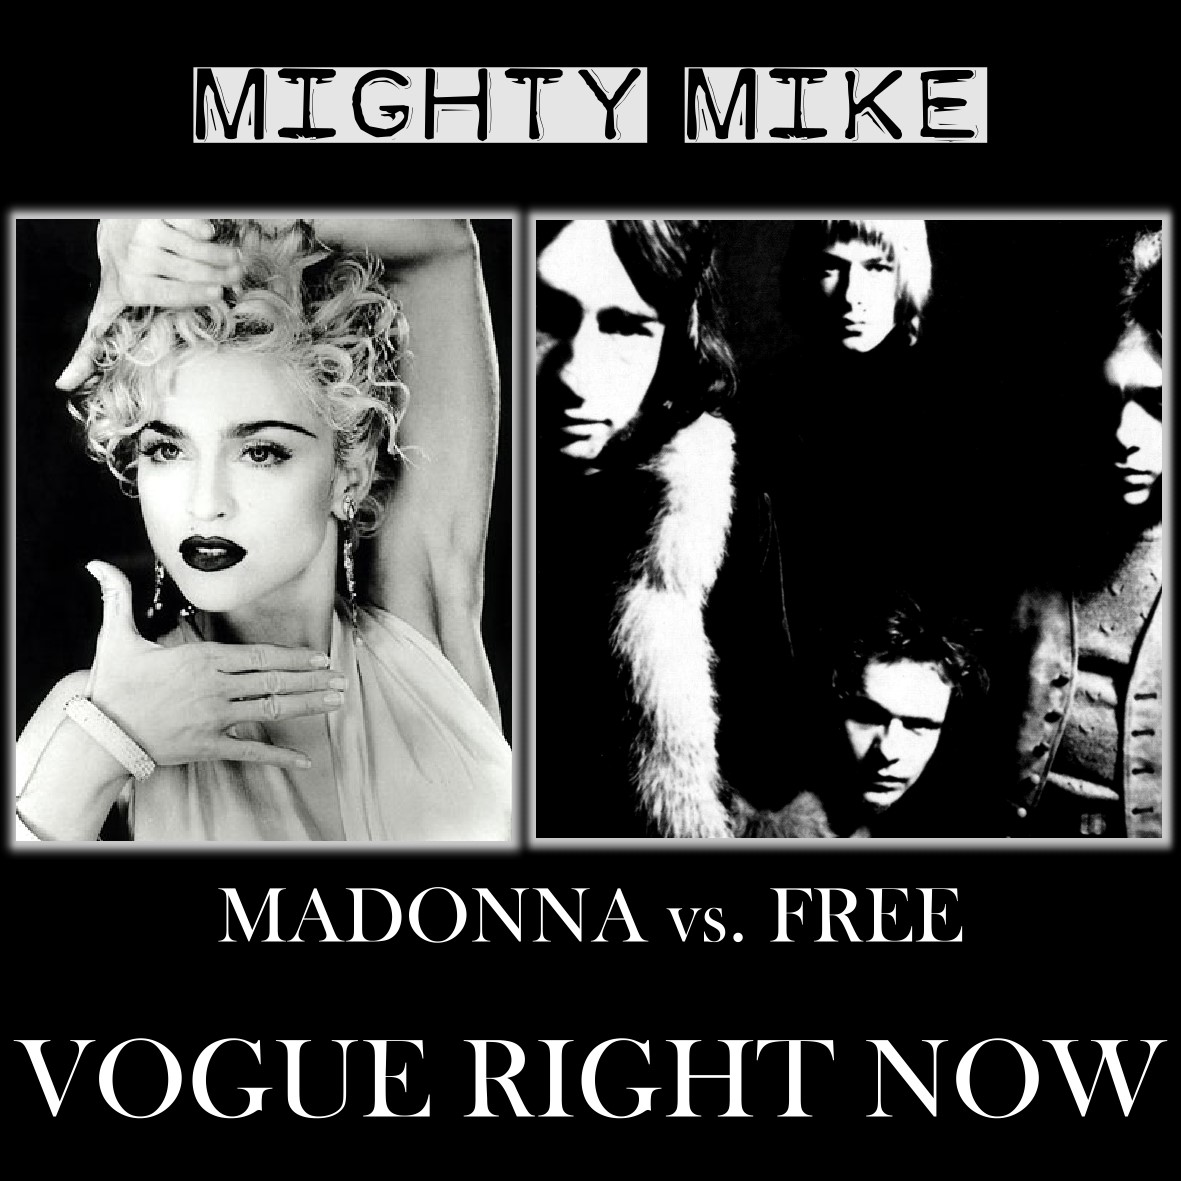 Vogue right now (Free / Madonna) (2010)